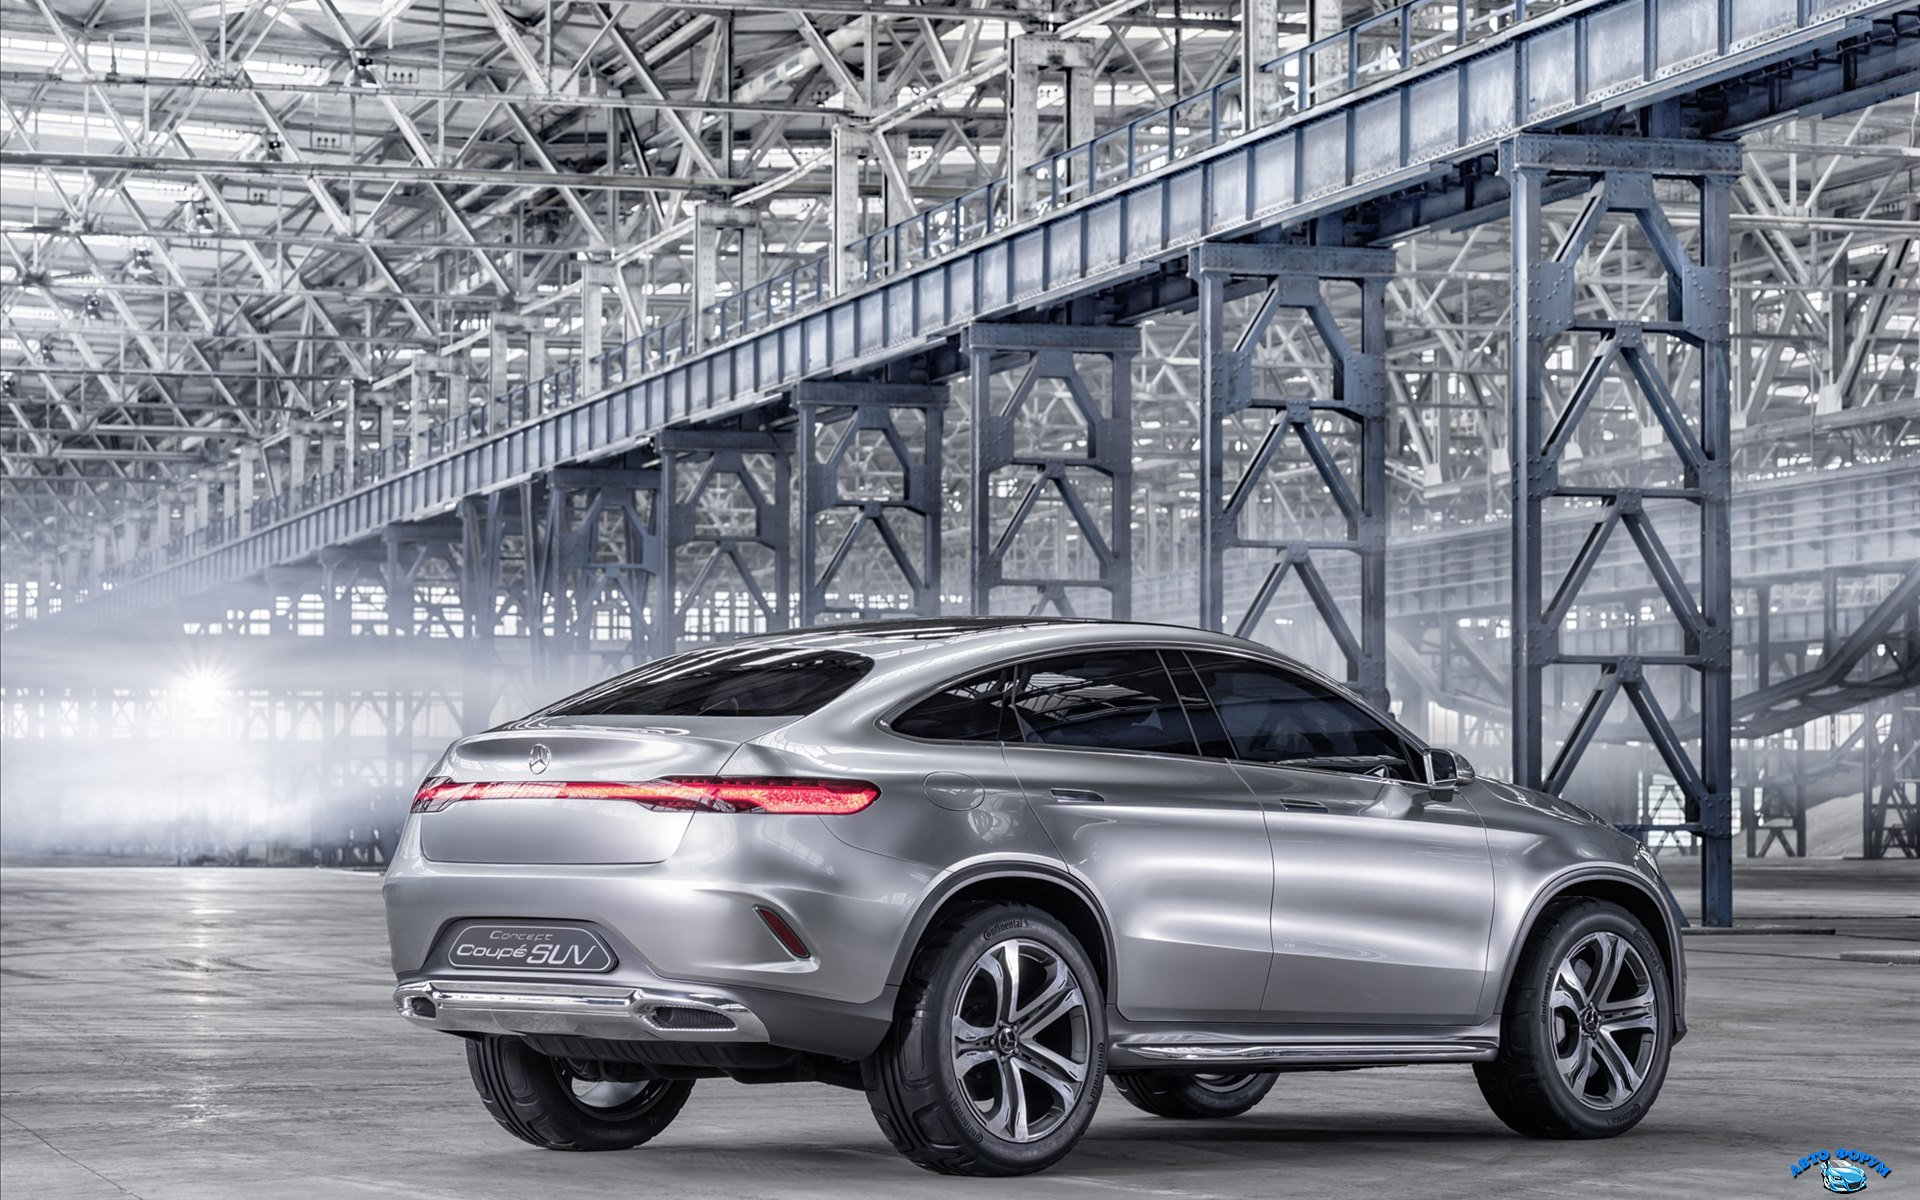 Mercedes-Benz-Coupe-SUV-Concept-2014-widescreen-15.jpg